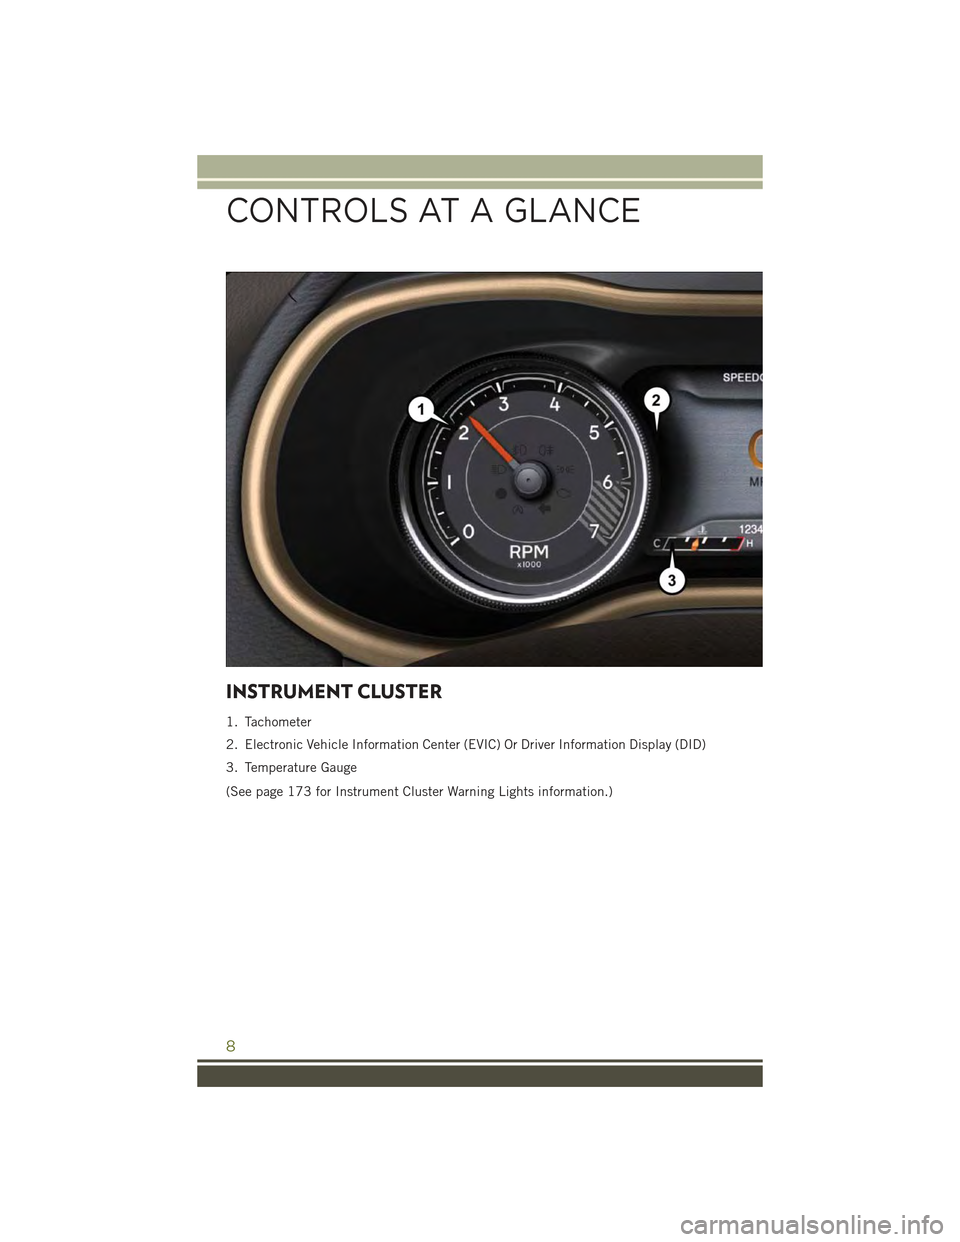 JEEP CHEROKEE 2015 KL / 5.G User Guide INSTRUMENT CLUSTER 1. Tachometer 2. Electronic Vehicle Information Center (EVIC) Or Driver Information Display (DID) 3. Temperature Gauge (See page 173 for Instrument Cluster Warning Lights informatio